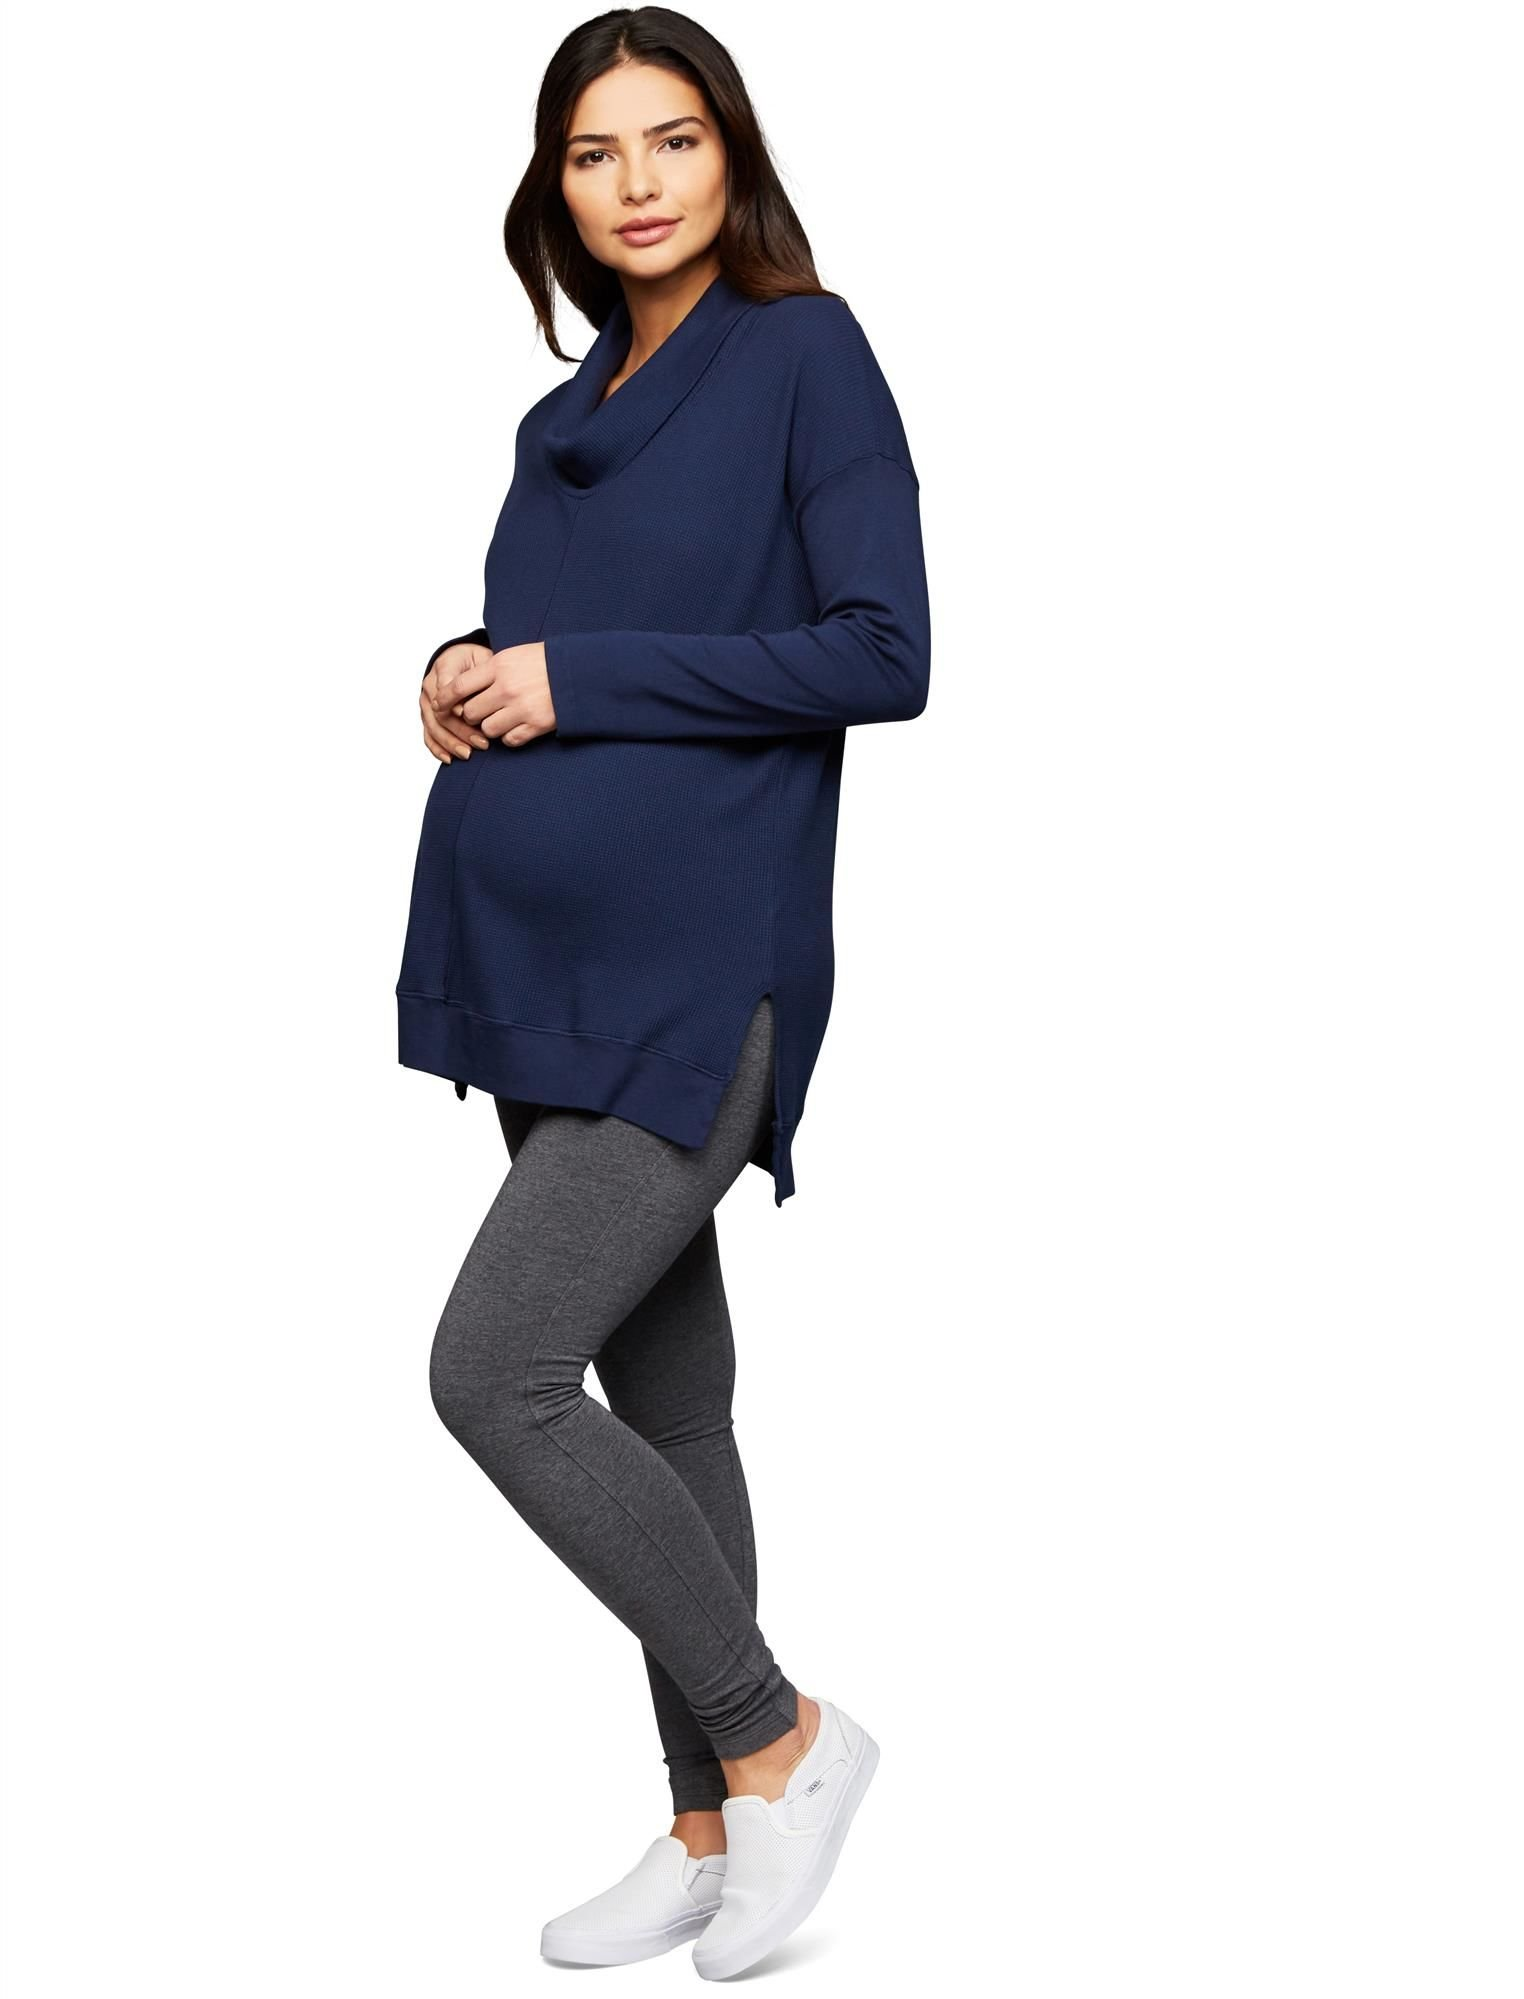 Splendid Secret Fit Belly French Terry Maternity Leggings